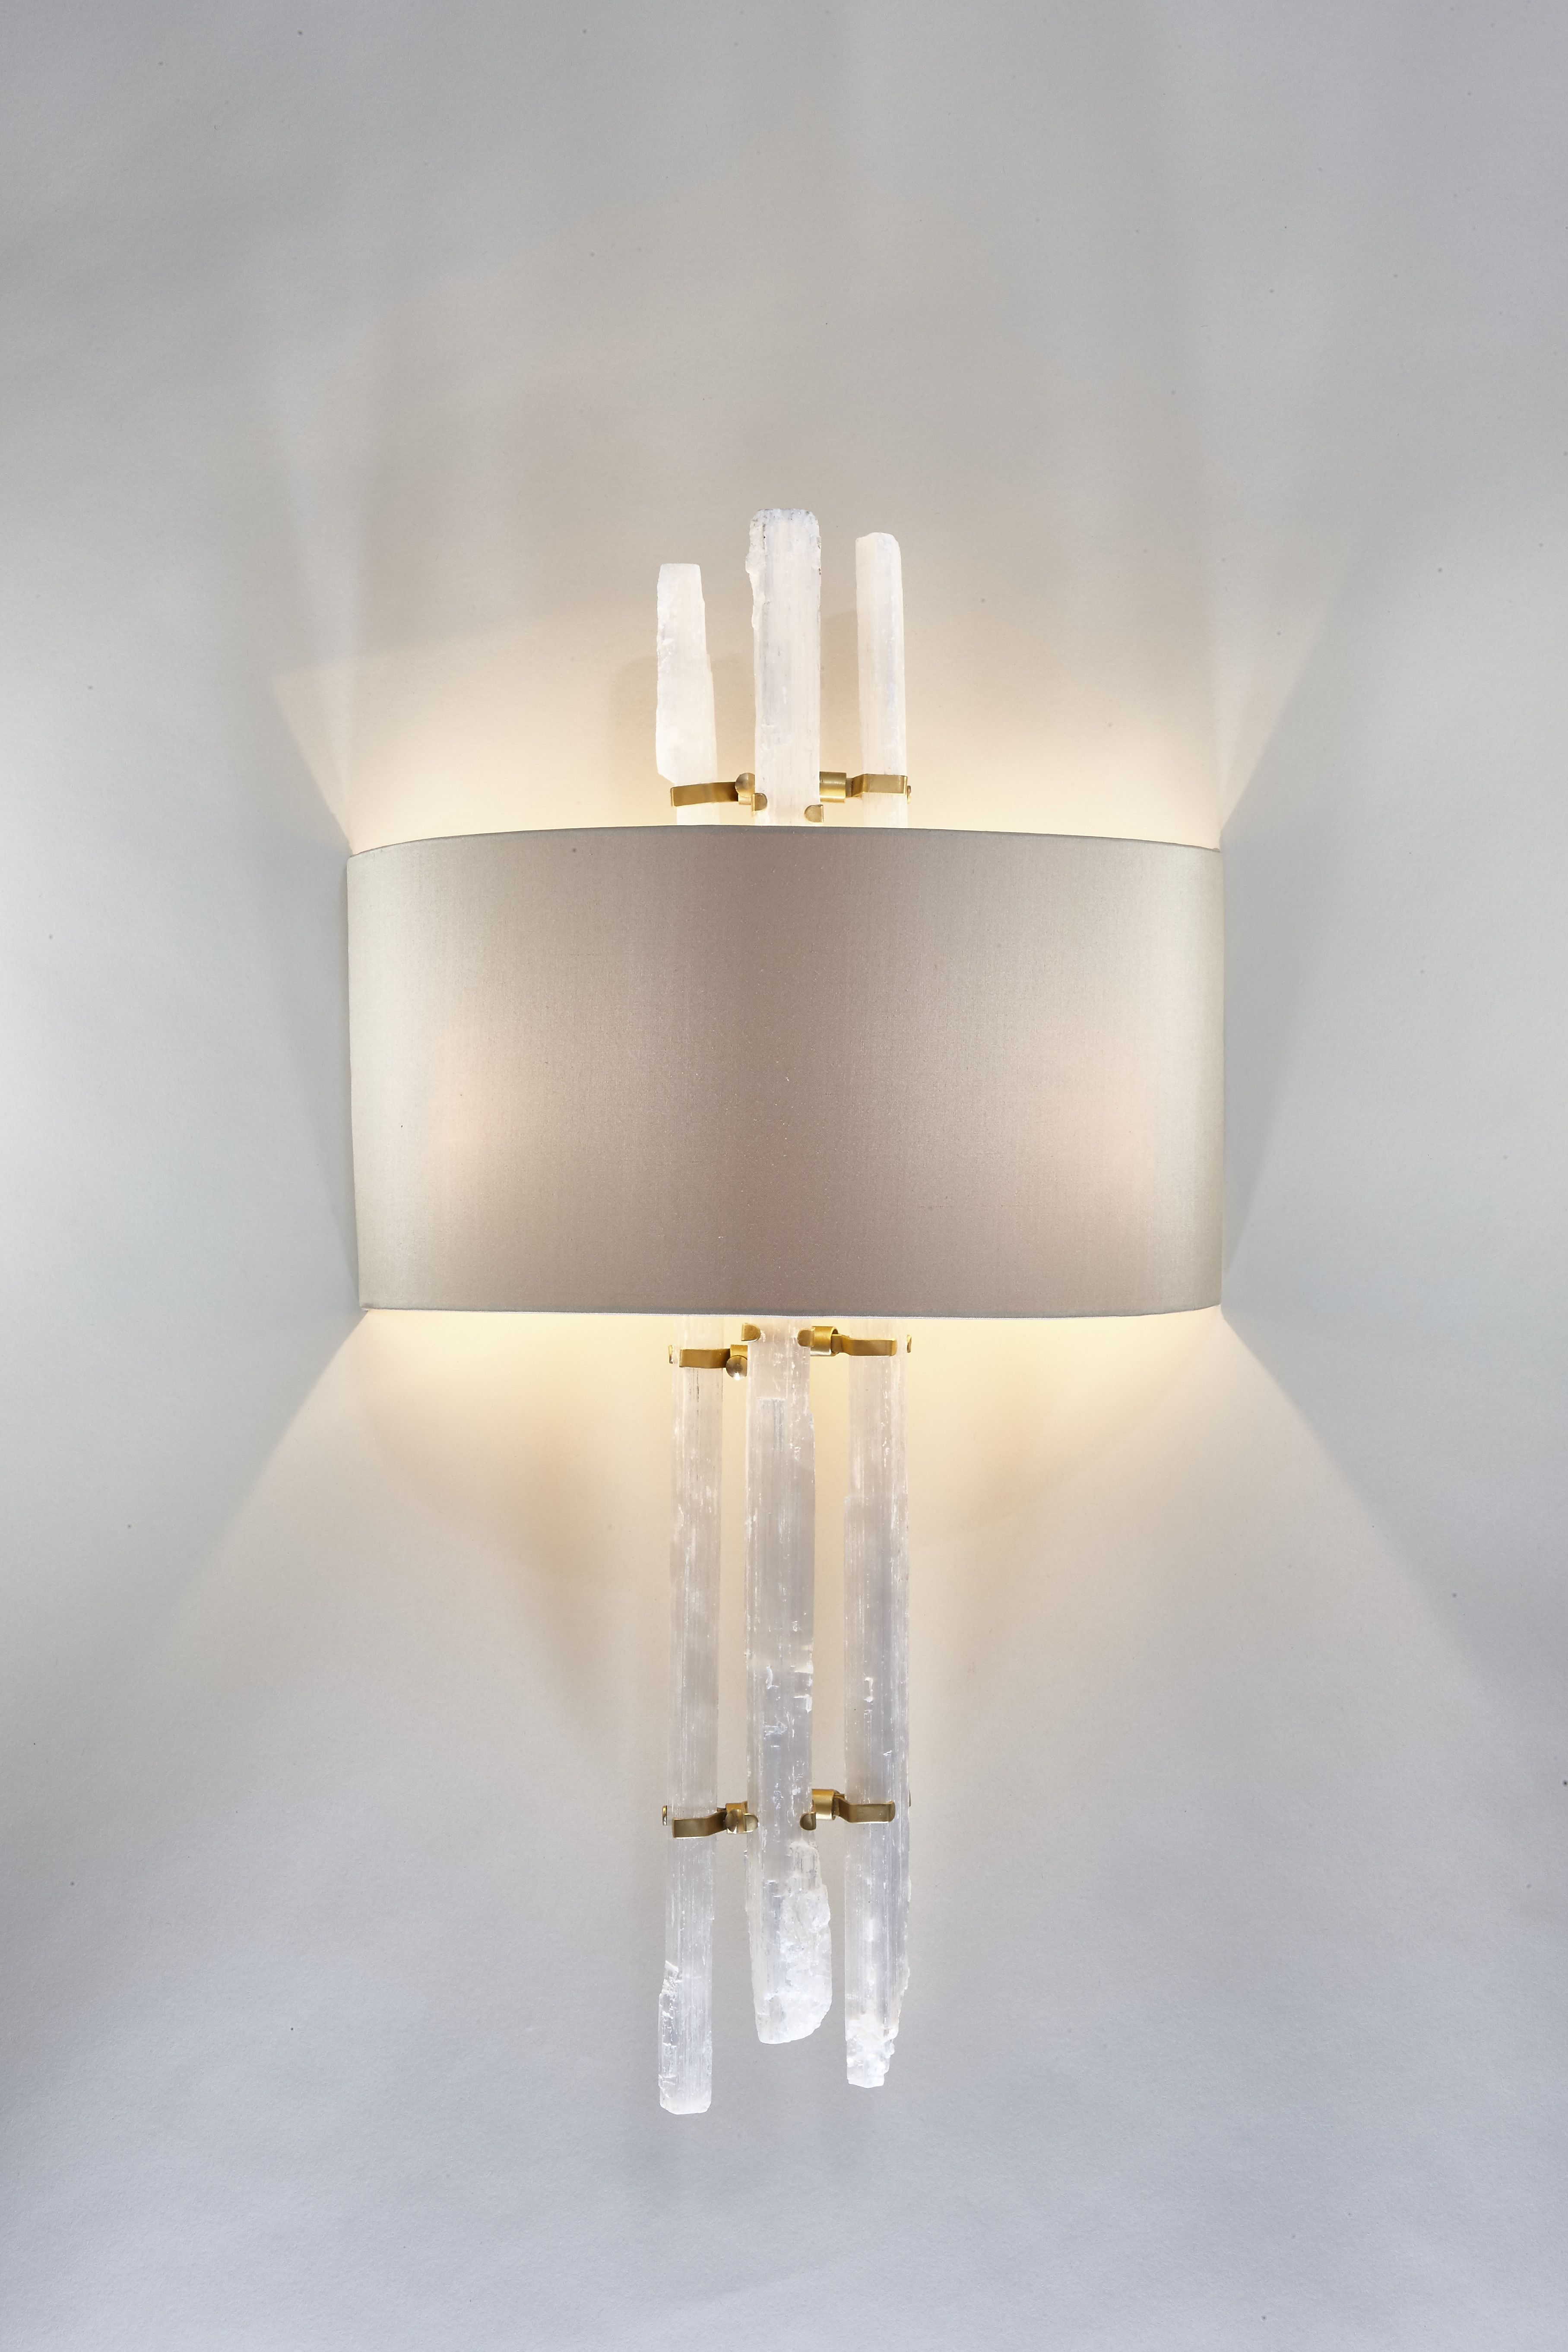 Bathroom Lights The Range rock crystal wall light made for cocovara interiorsphillips